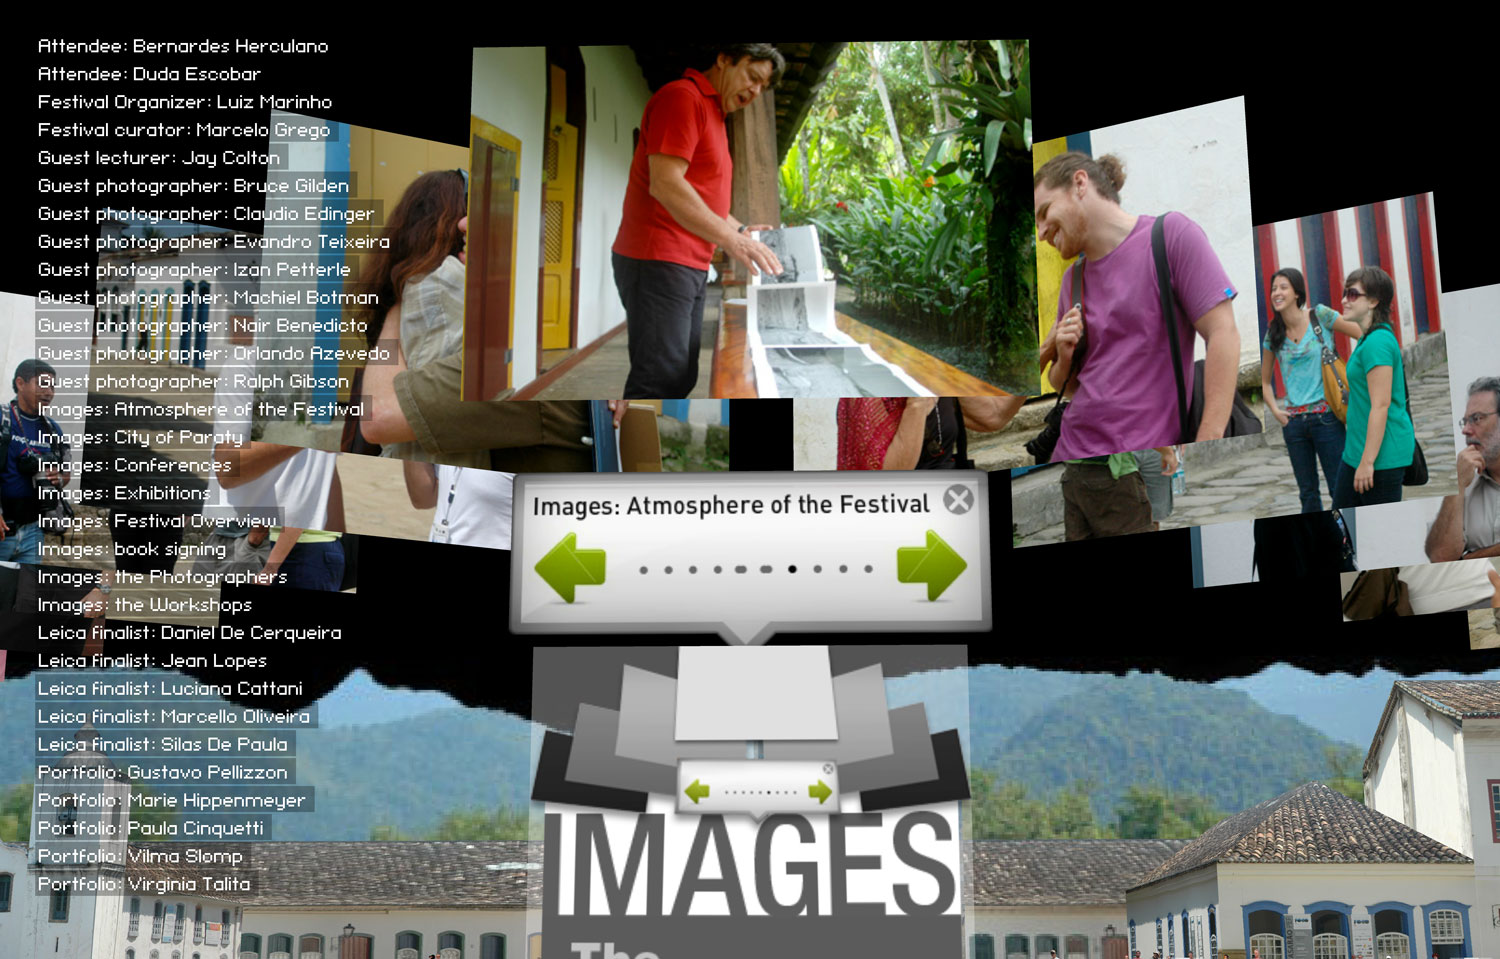 Multimedia coverage by Martin Lenclos